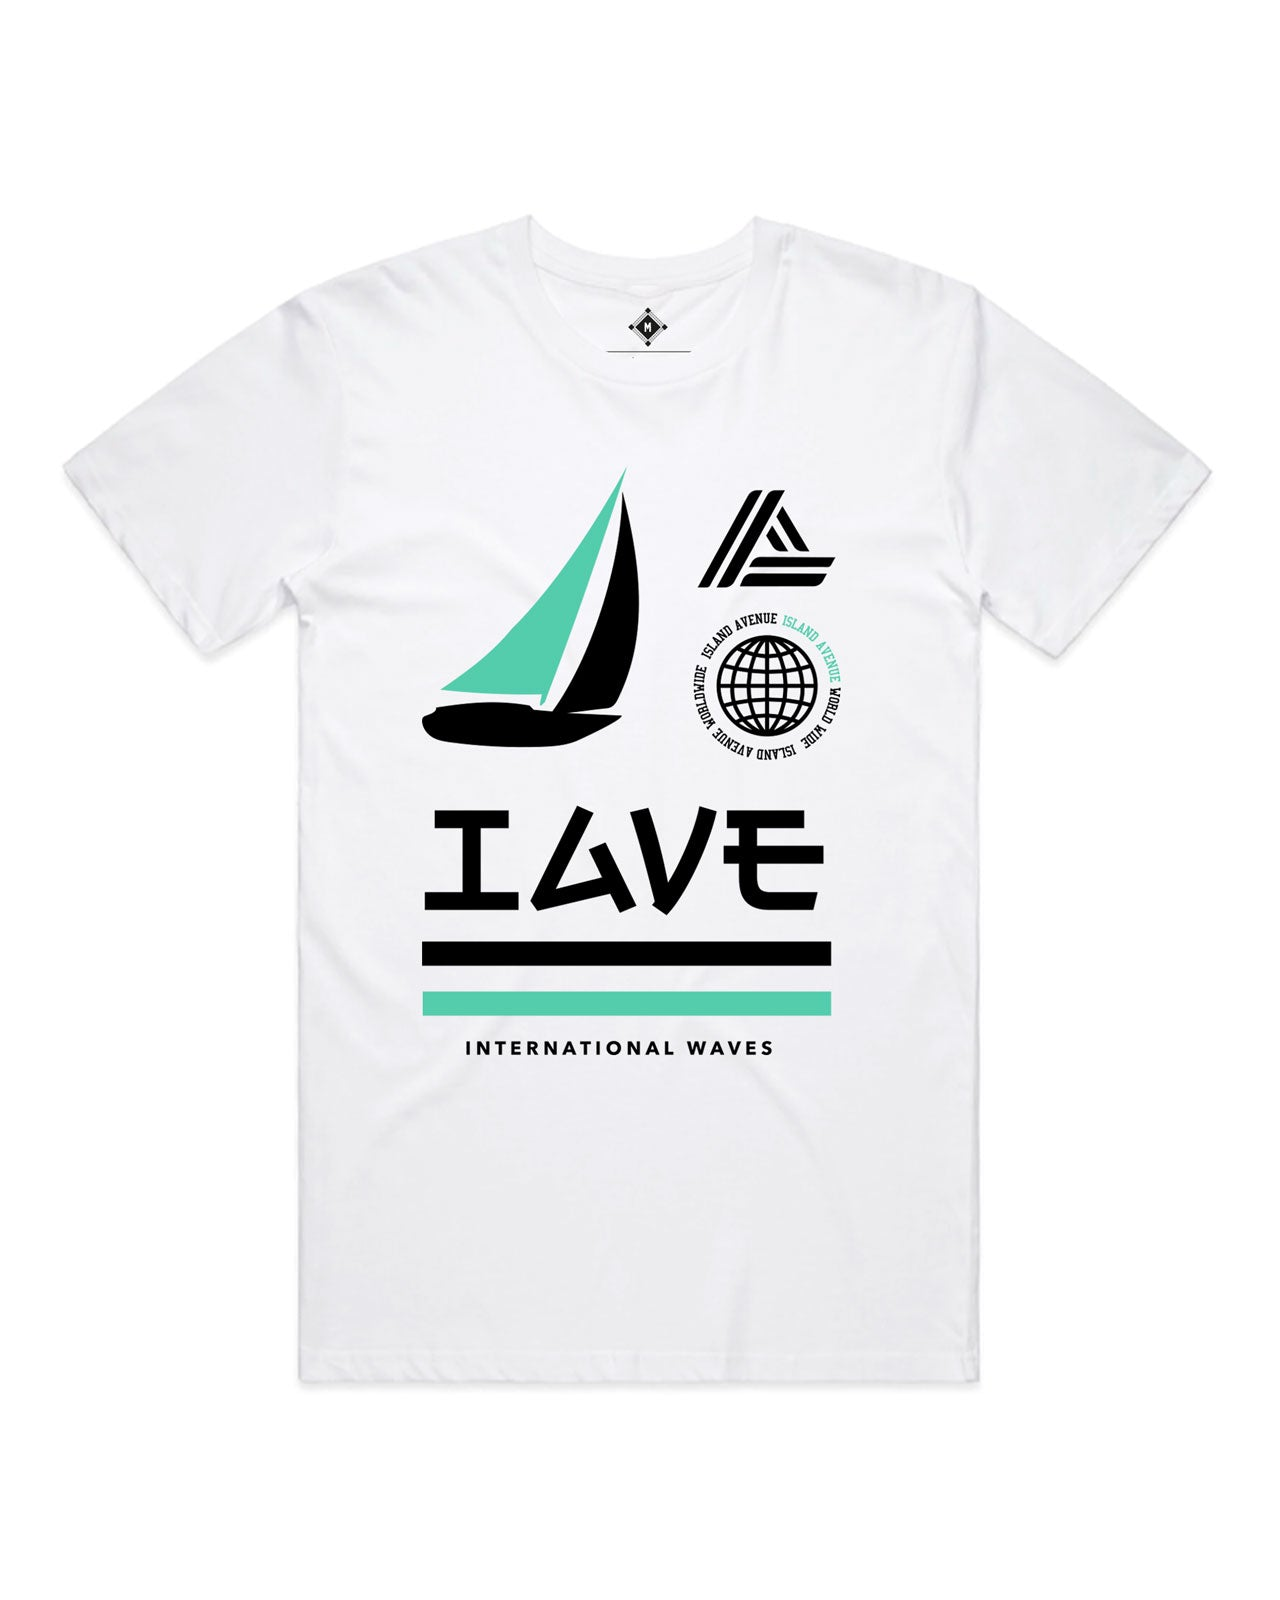 INT'L WAVES Tees (WHITE)